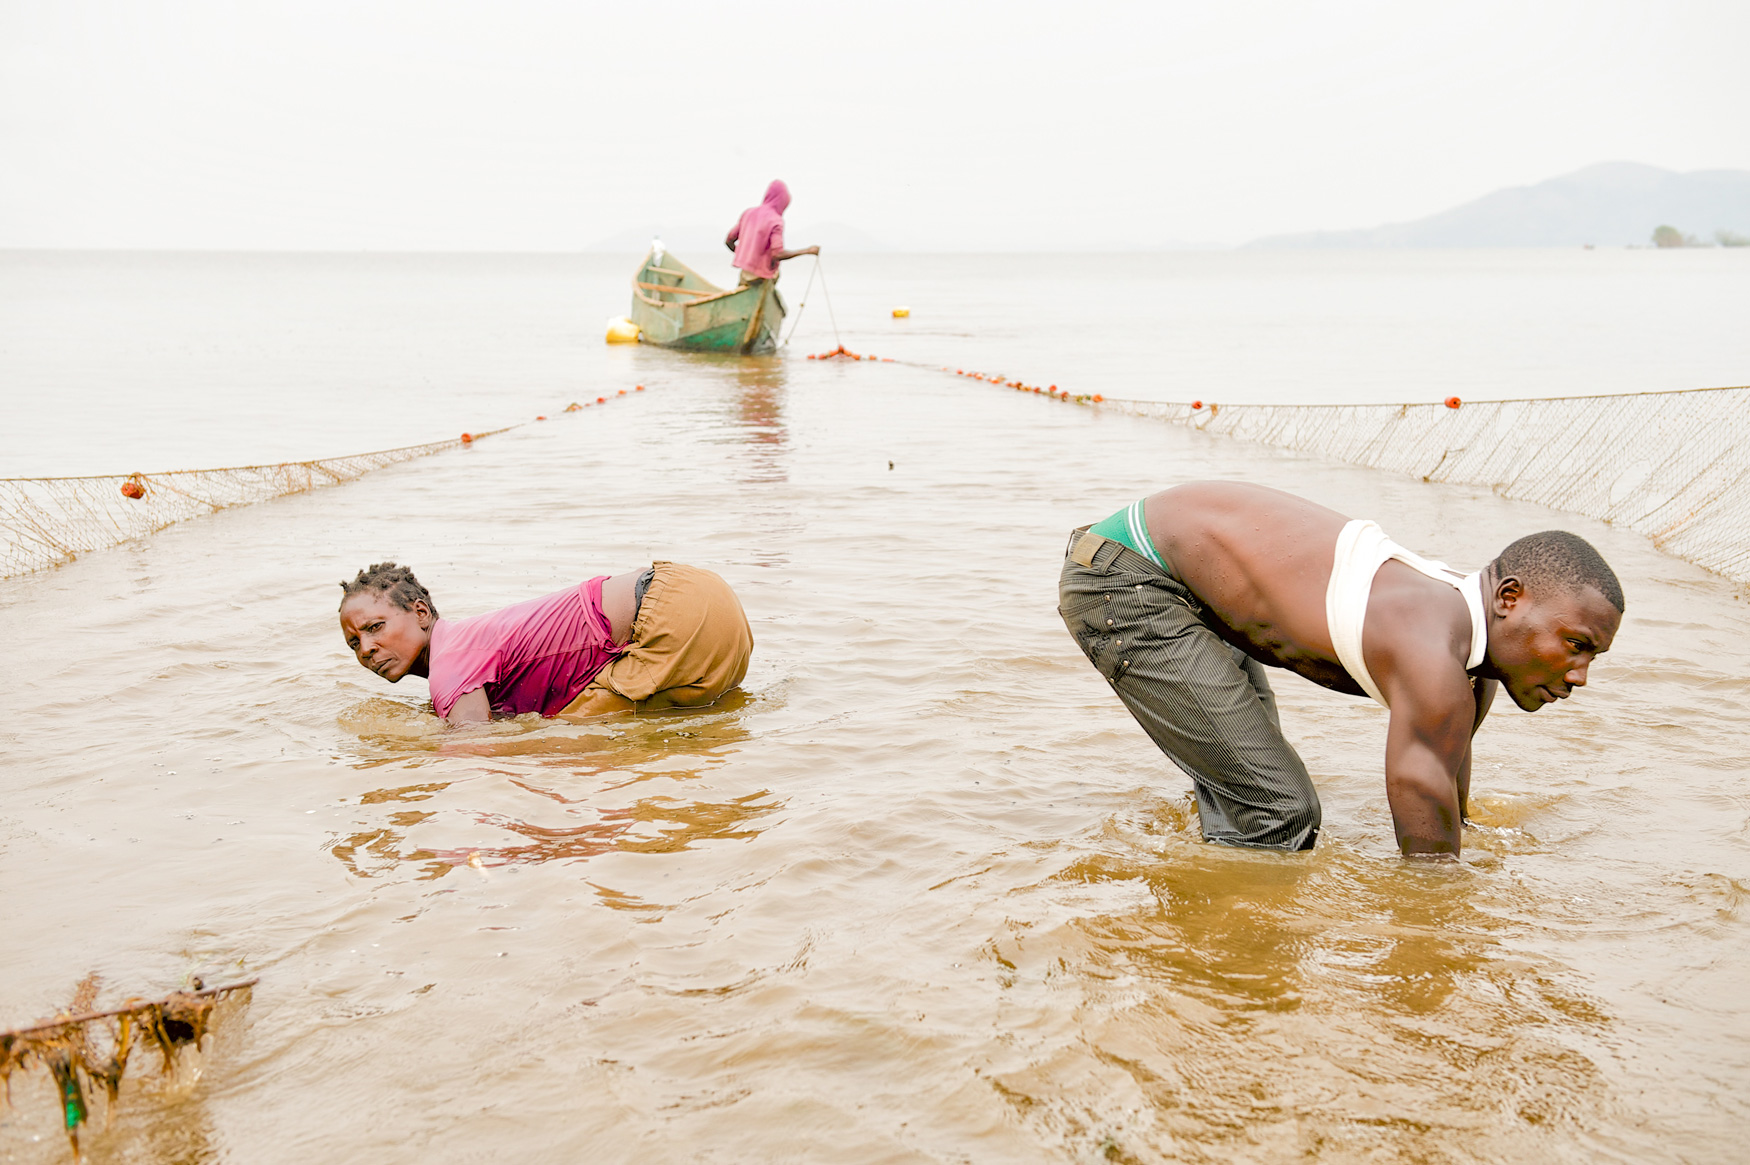 Demand for fish in Kenya is rapidly rising. But Lake Victoria is fast running out of wild fish. -